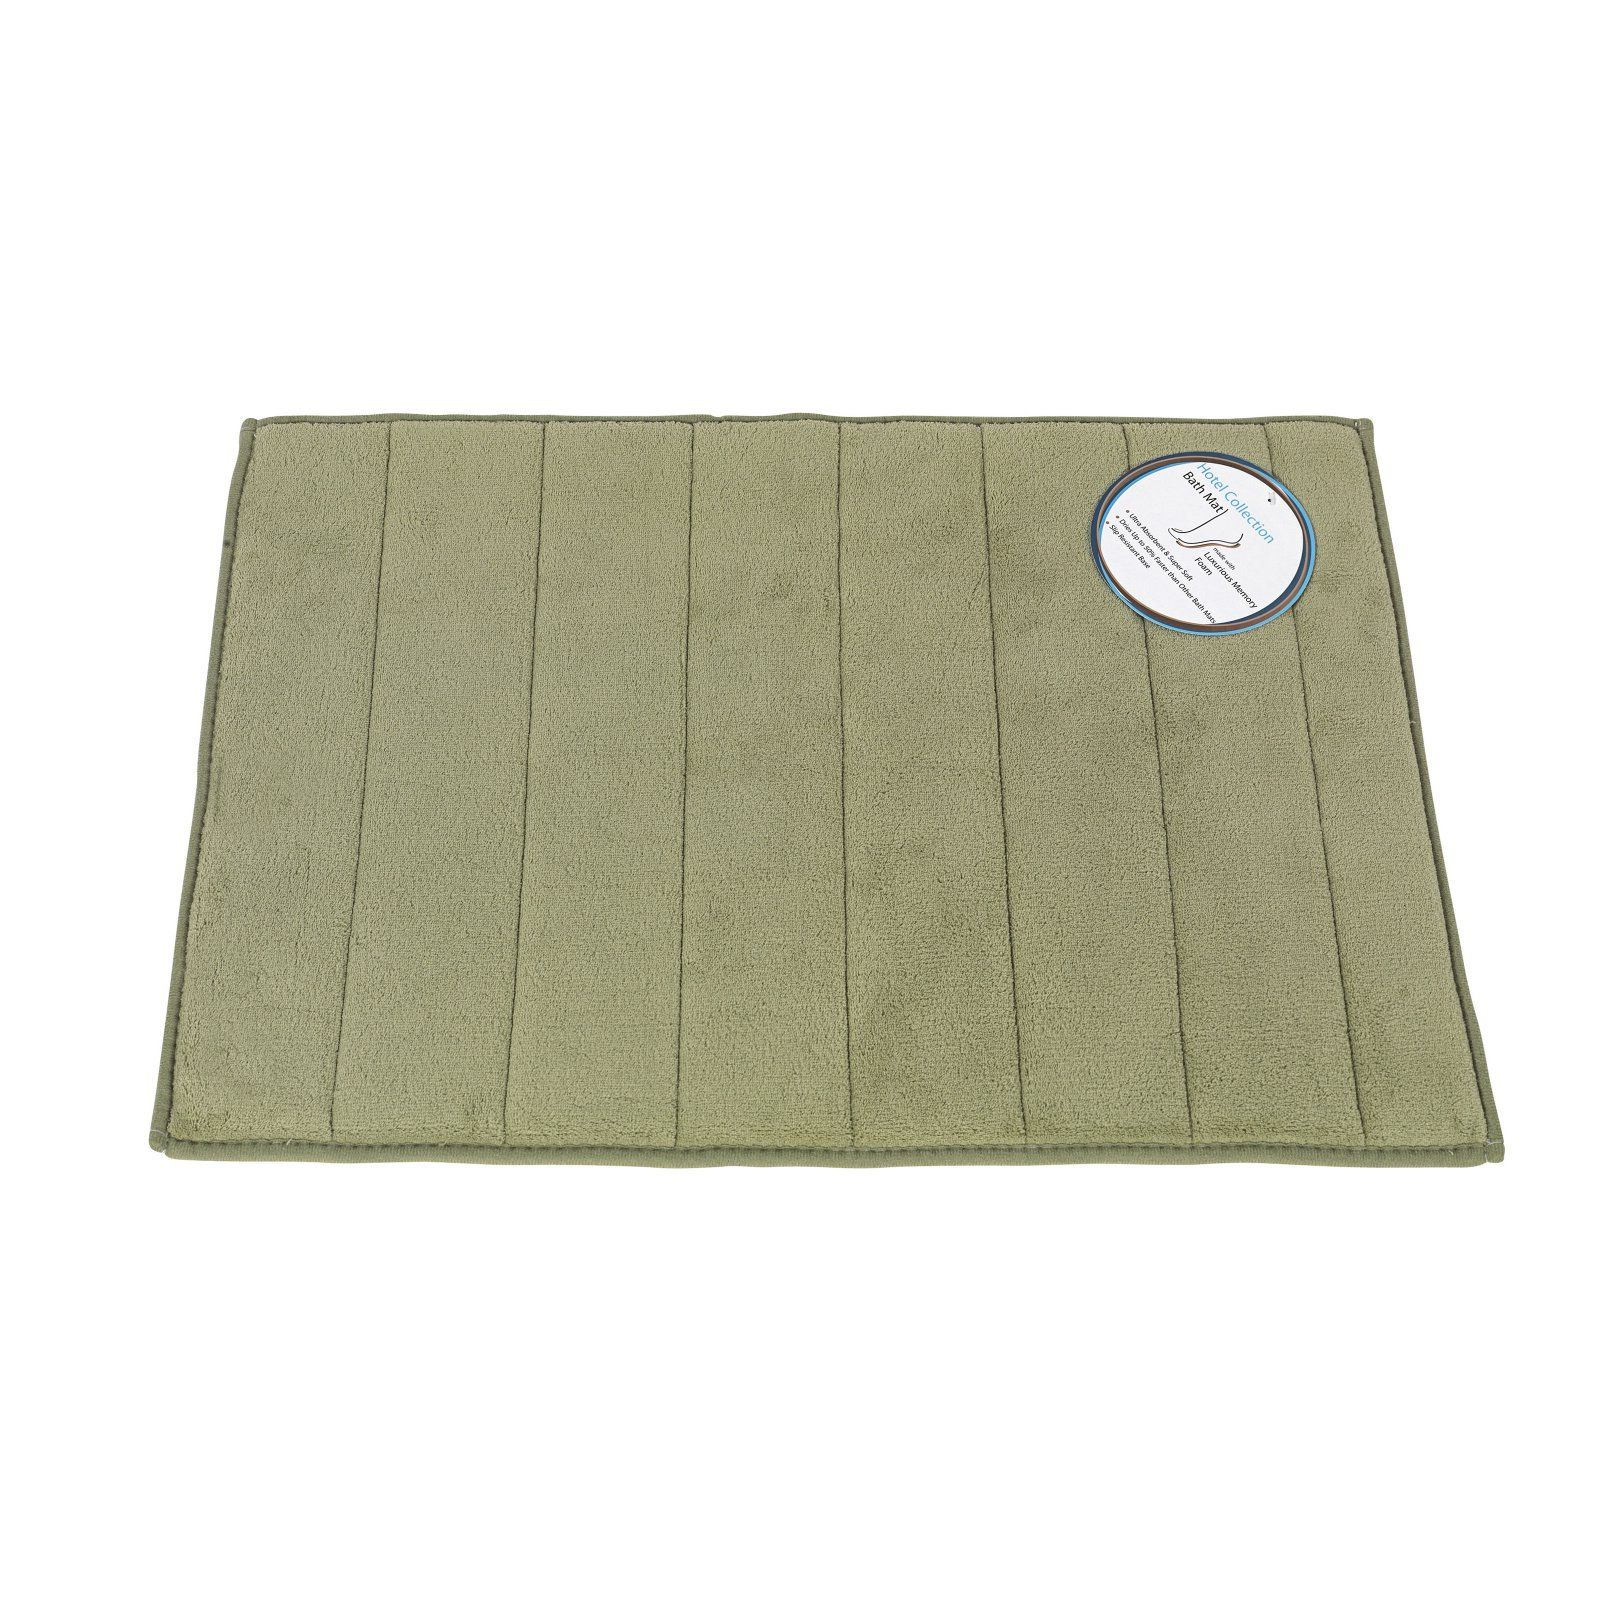 Carnation Home Fashions Luxury Memory Foam Bath Mat Memory Foam